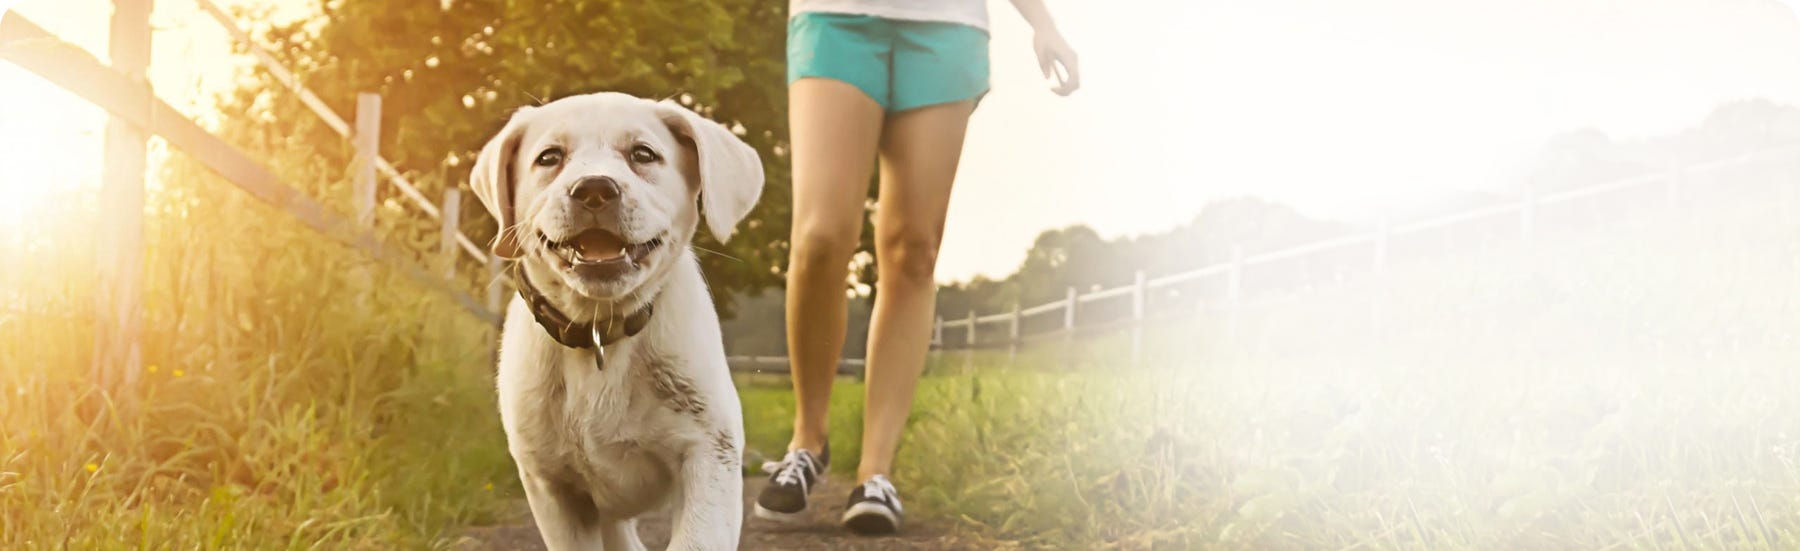 Walking and travel with your dogs